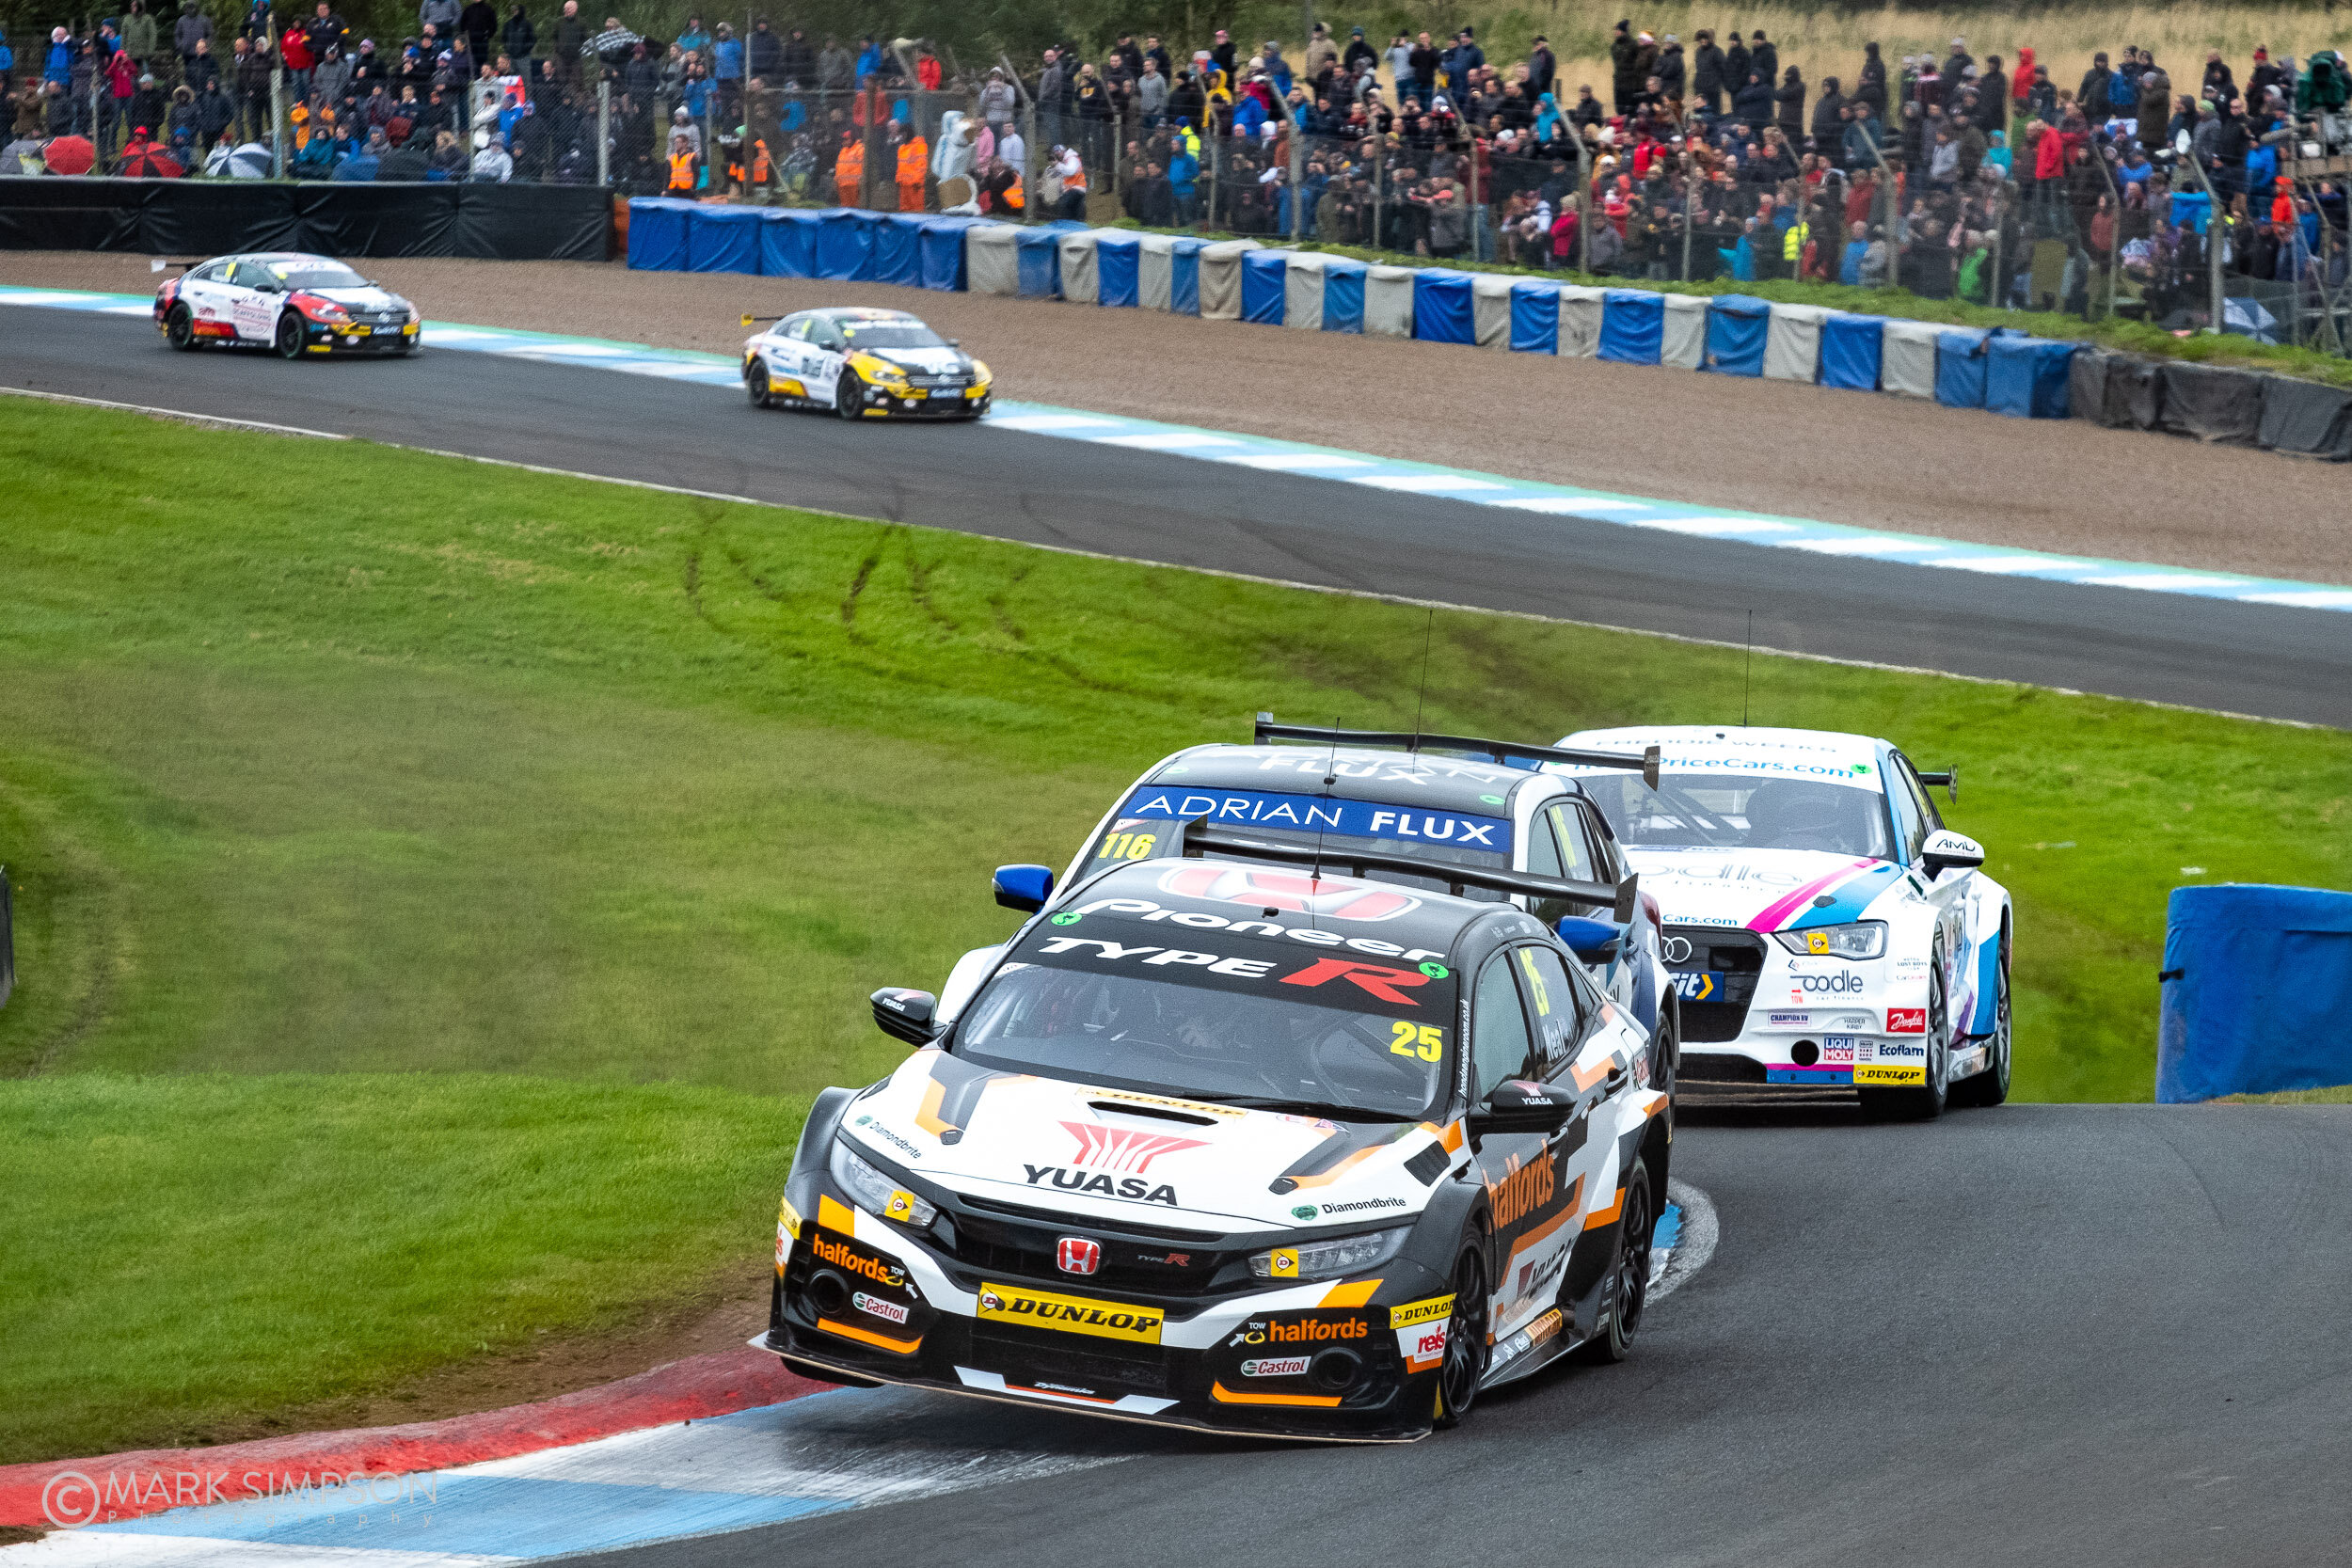 The frought battle between Matt Neal (Honda Civic Type R FK8) and Ash Sutton (Subaru Levorg) ended in retirement for both drivers.